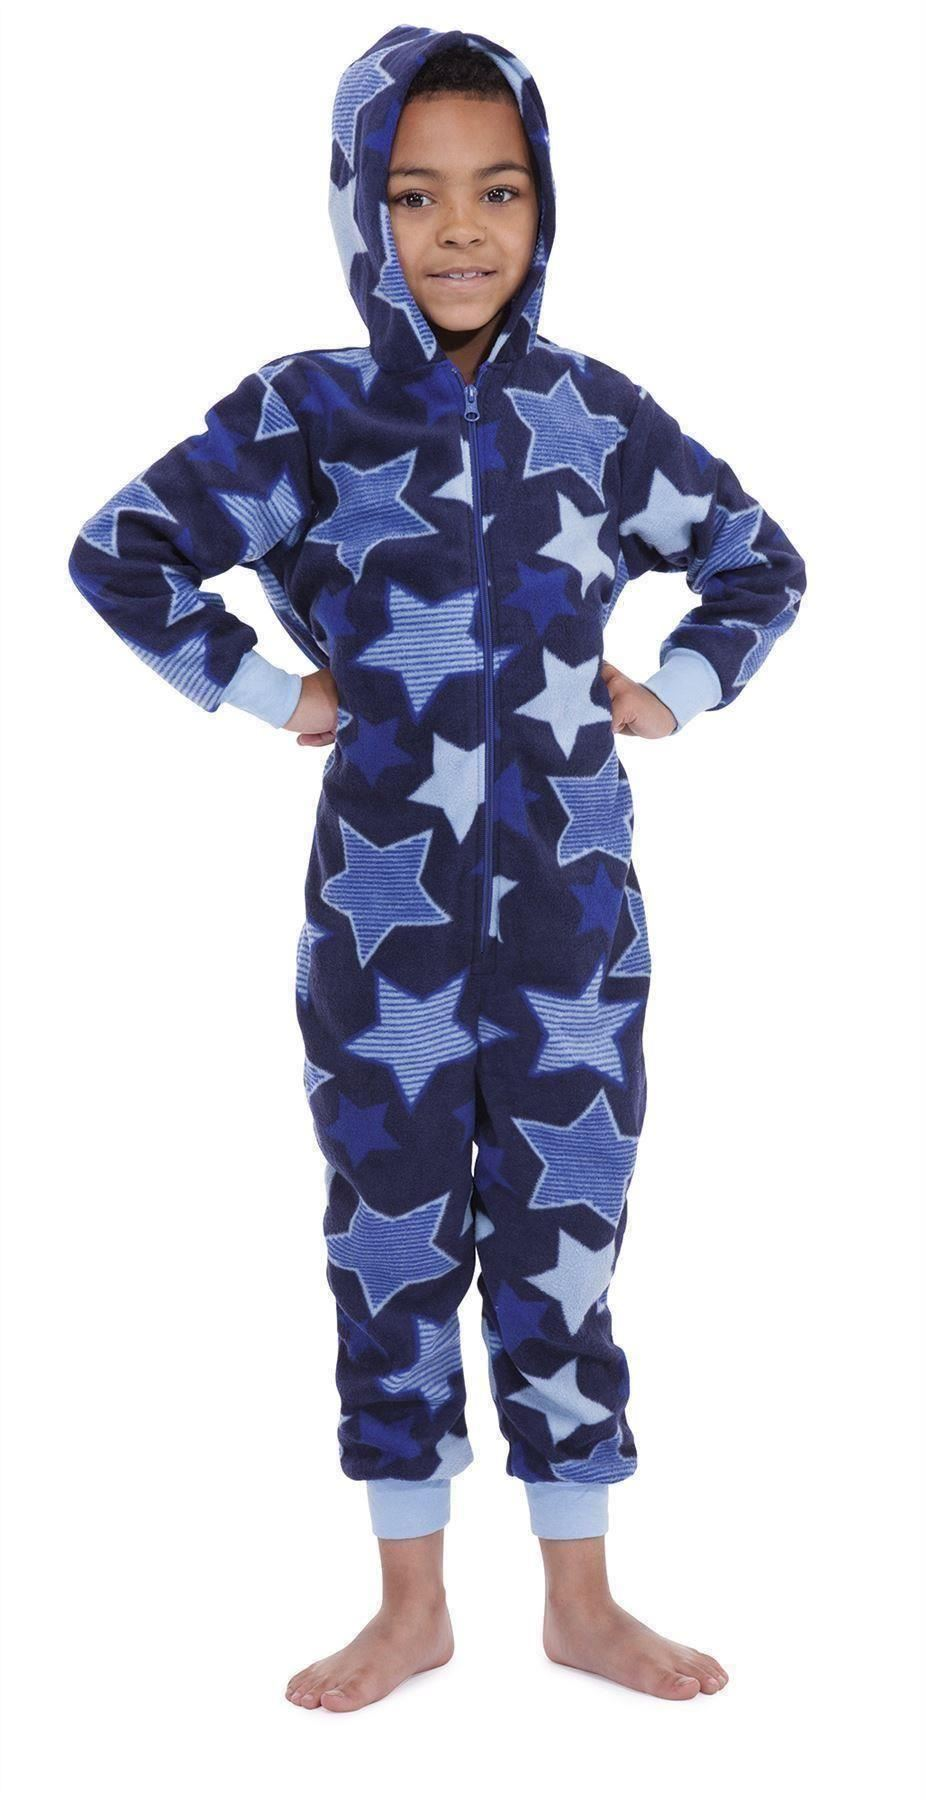 Shop for onesies for boys online at Target. Free shipping on purchases over $35 and save 5% every day with your Target REDcard.